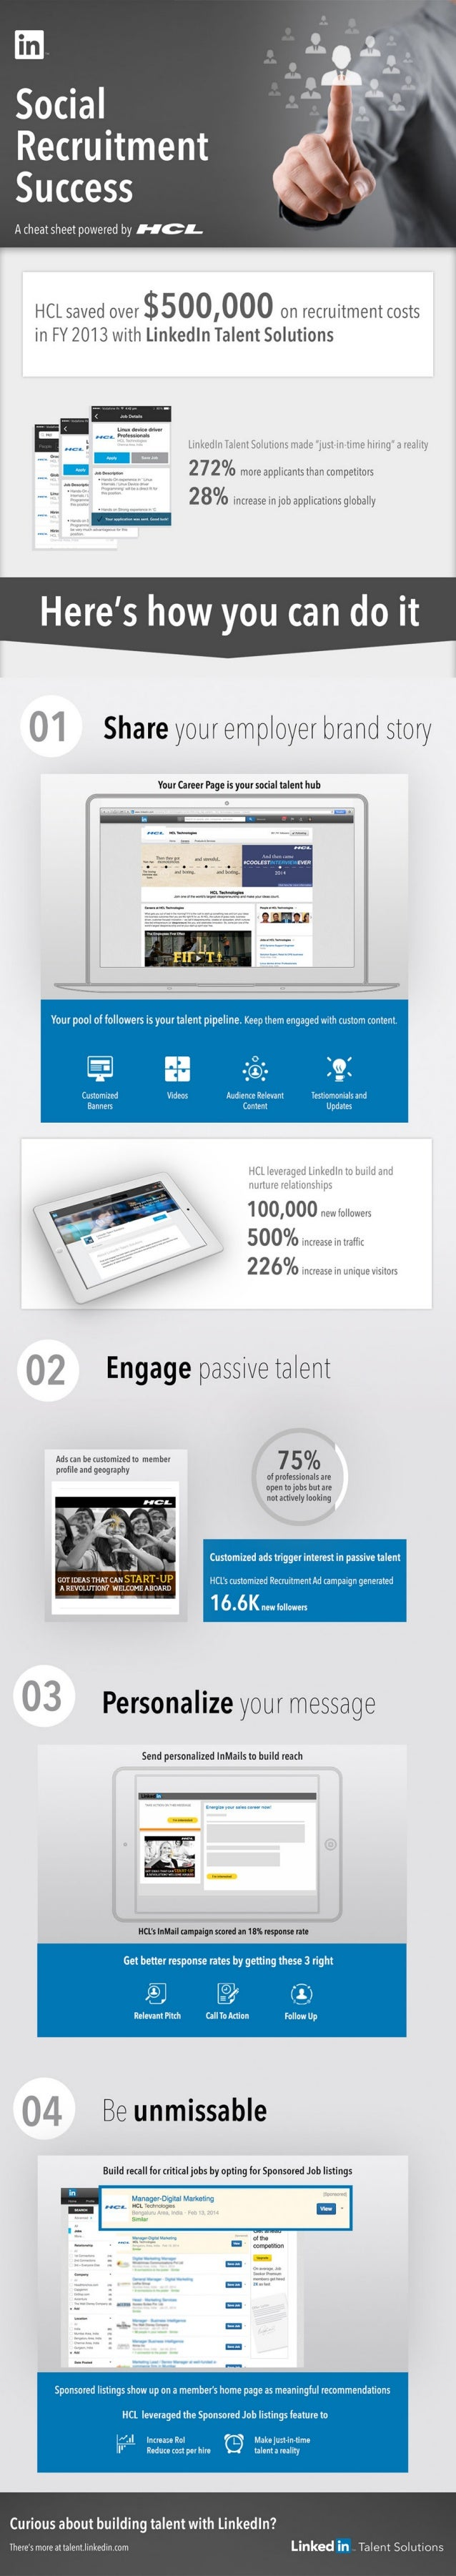 LinkedIn Social Recruitment Cheat Sheet Powered by HCL | Infographic